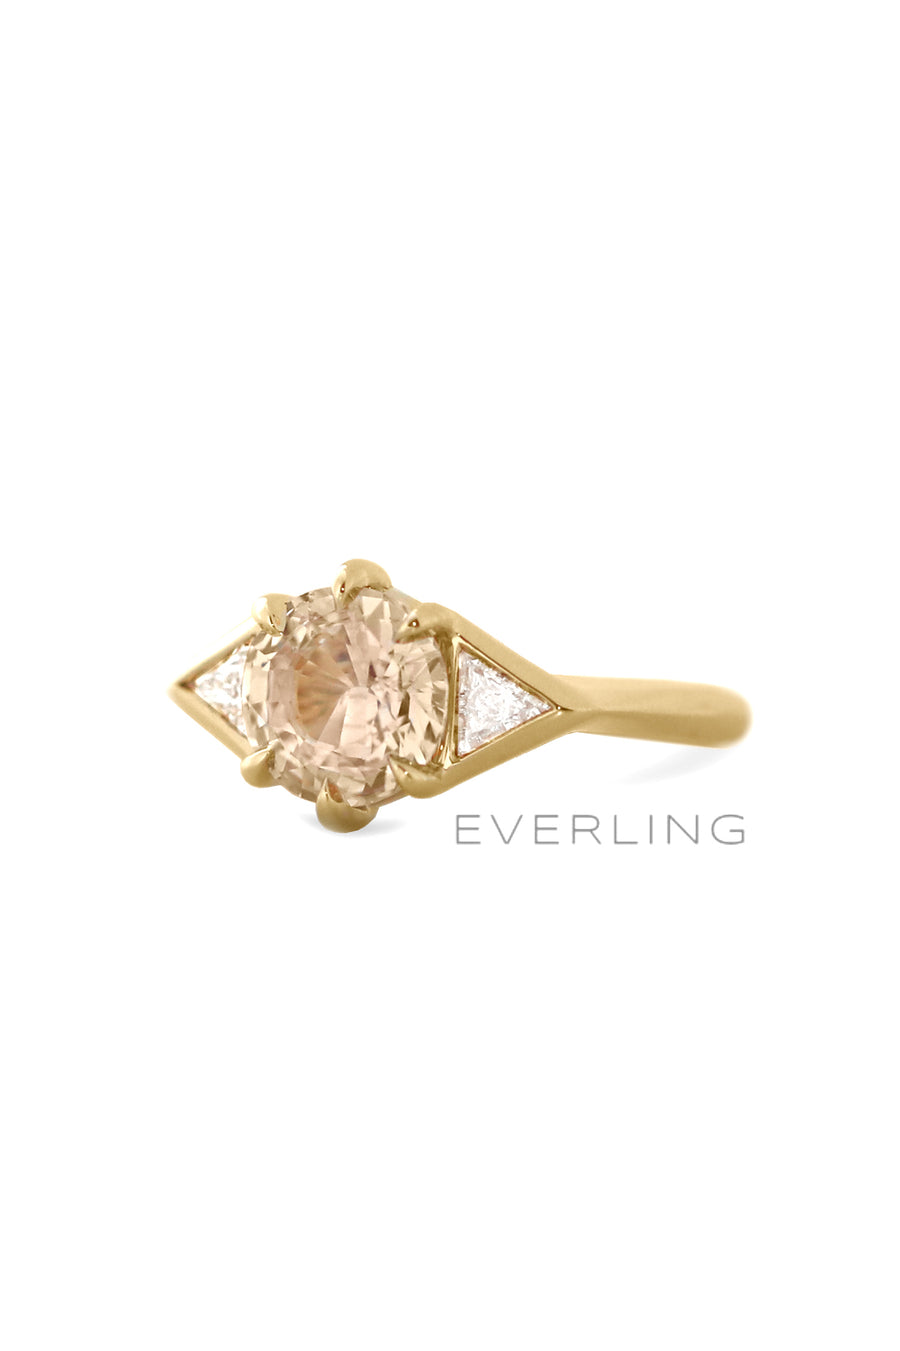 18k yellow gold ring with a 2.00ct champagne sapphire and 2 triangle diamonds. www.EverlingJewelry.com